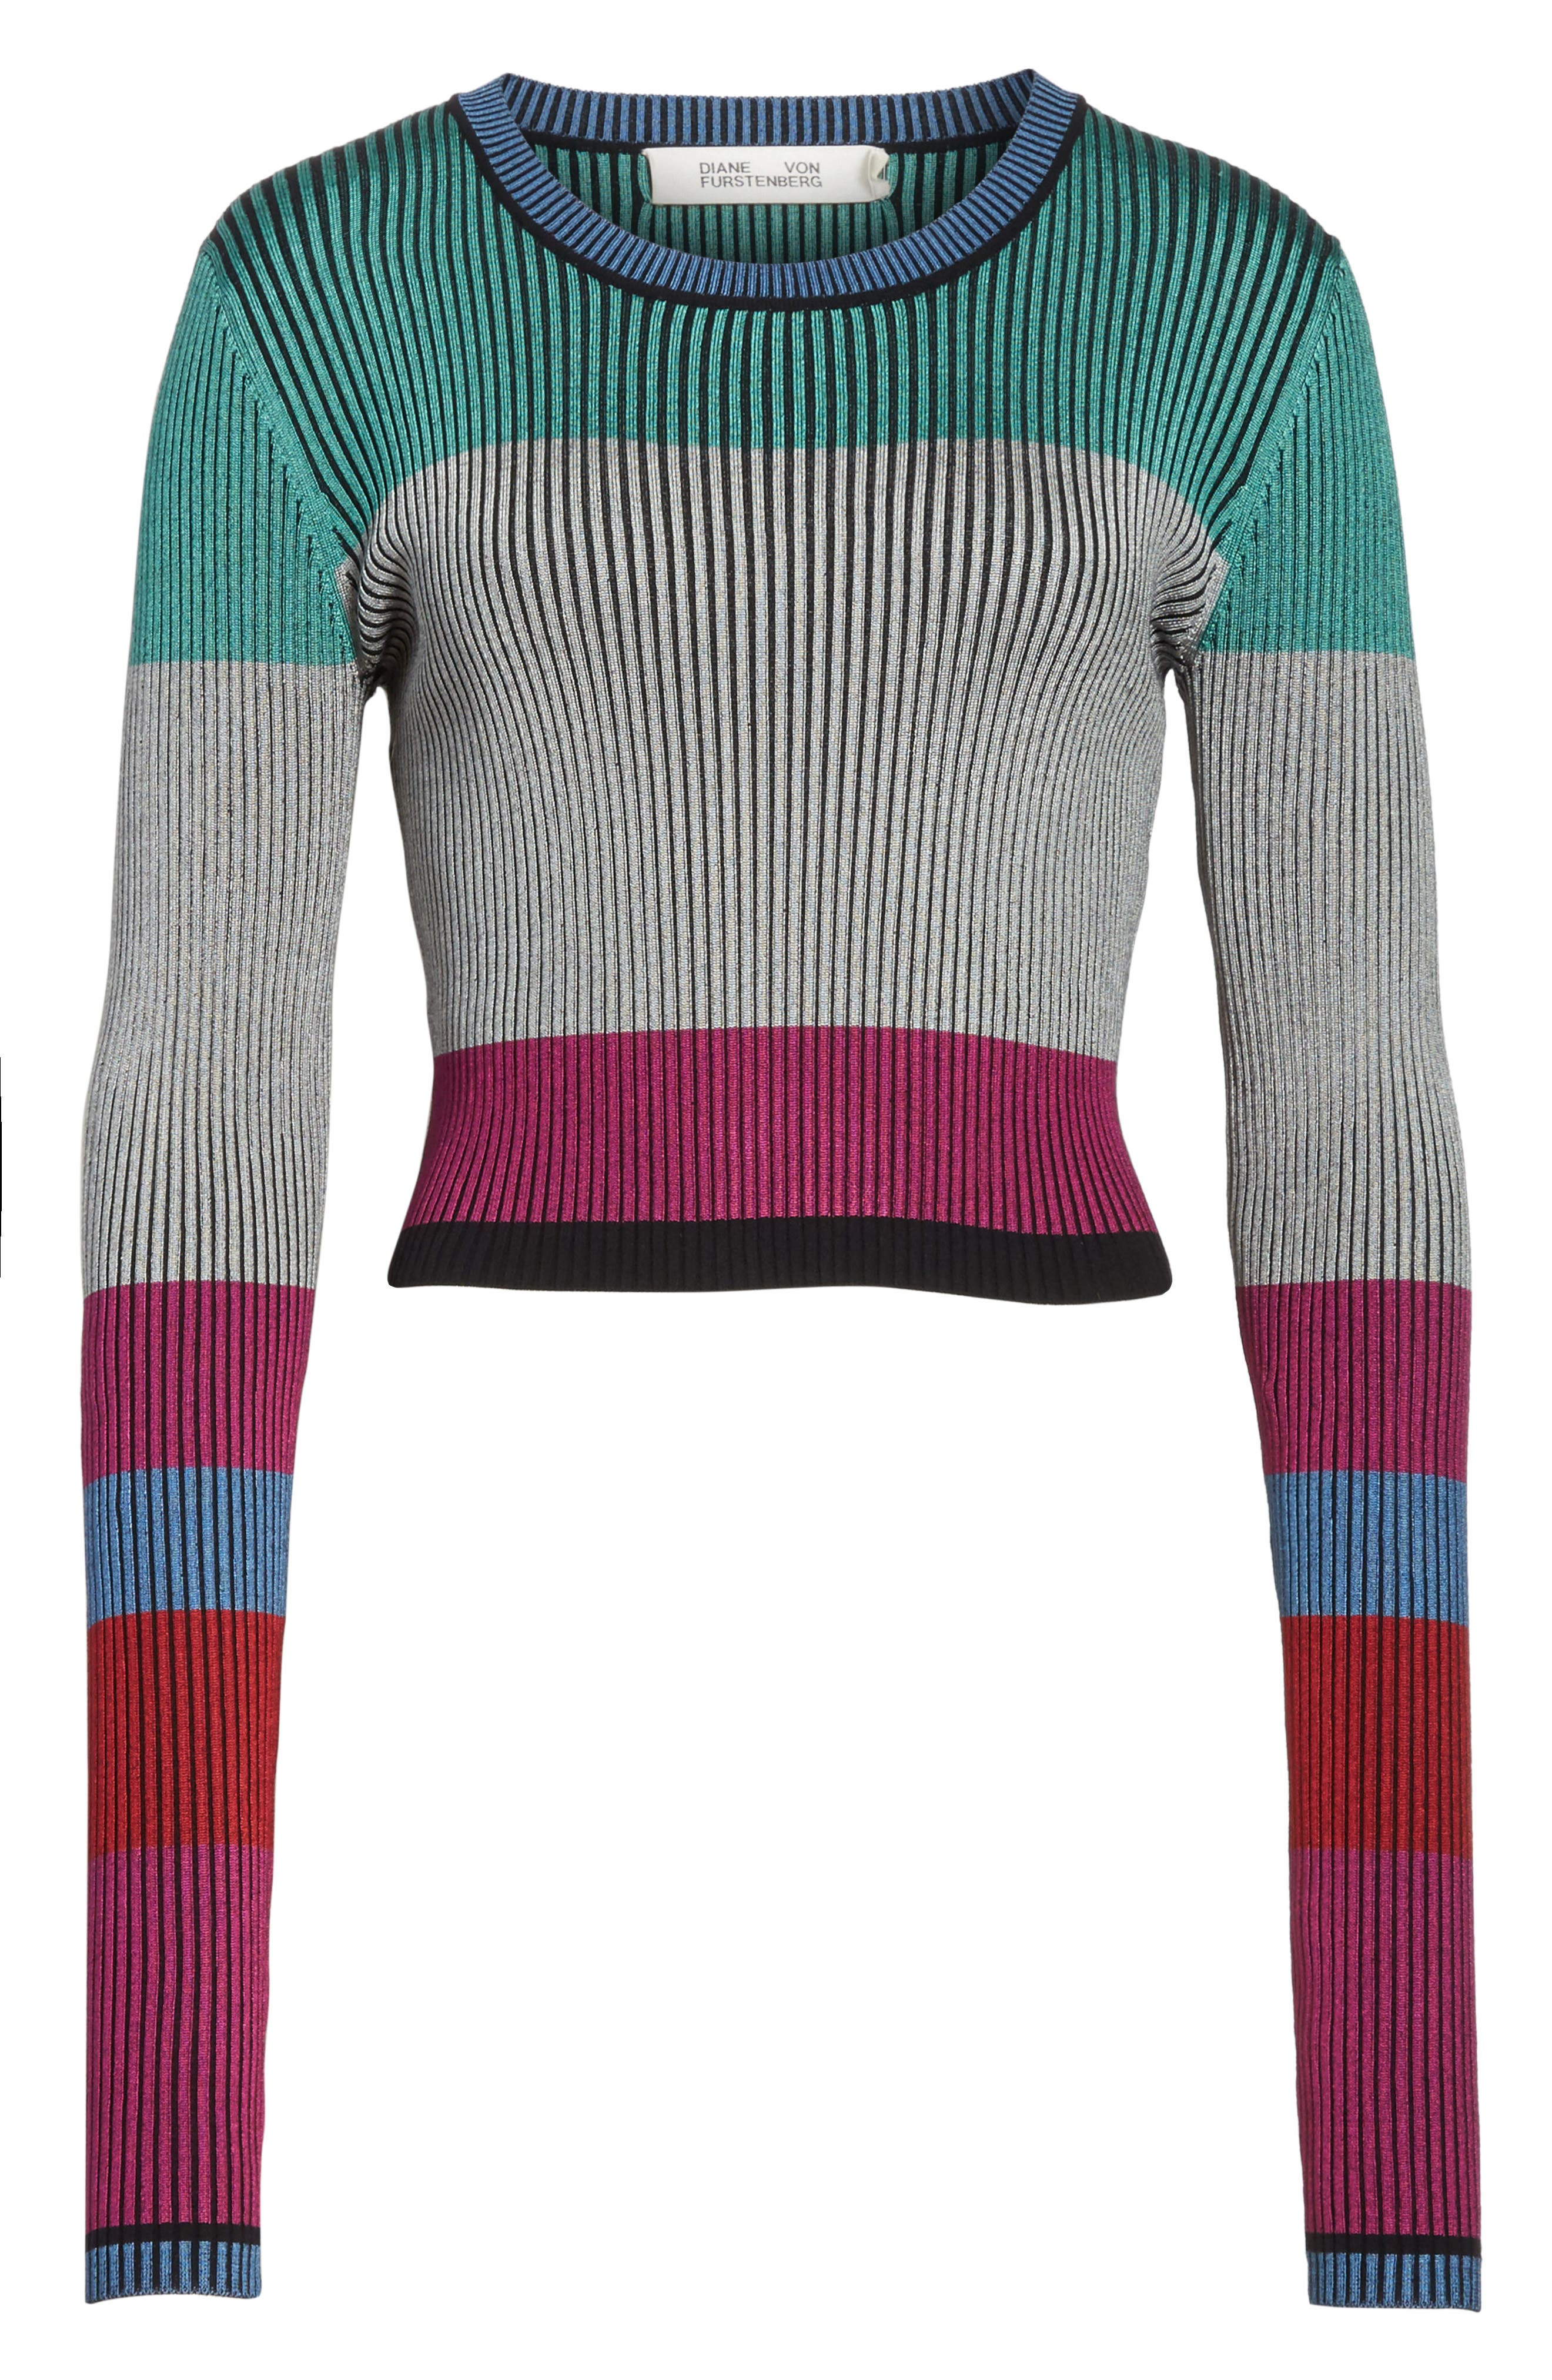 Diane von Furstenberg Cropped Plaited Pullover,                             Alternate thumbnail 6, color,                             Ribbon Pink Multi